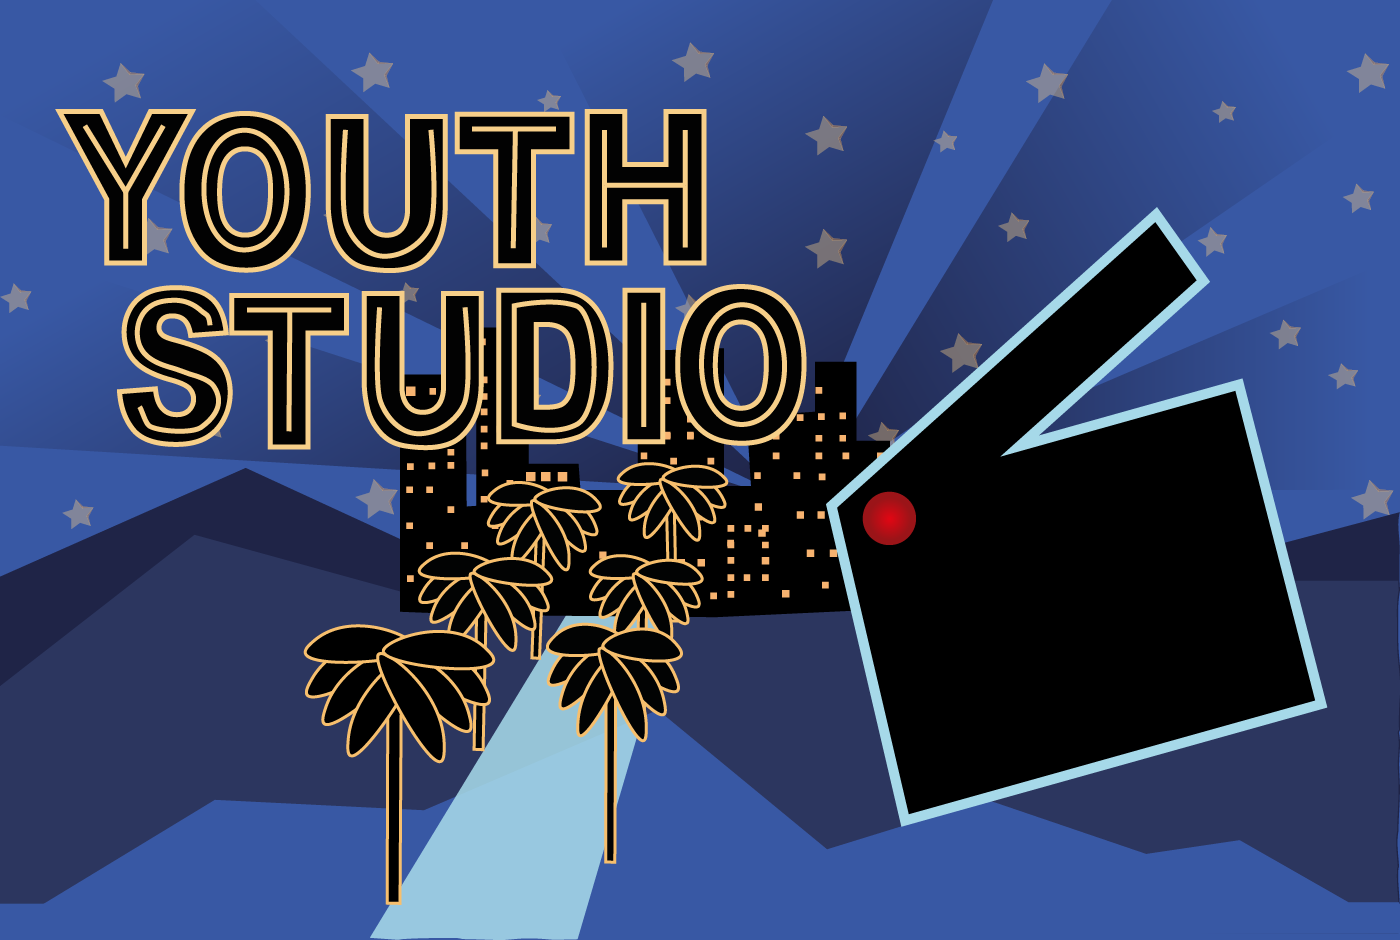 YOUTH STUDIO - Make your movie